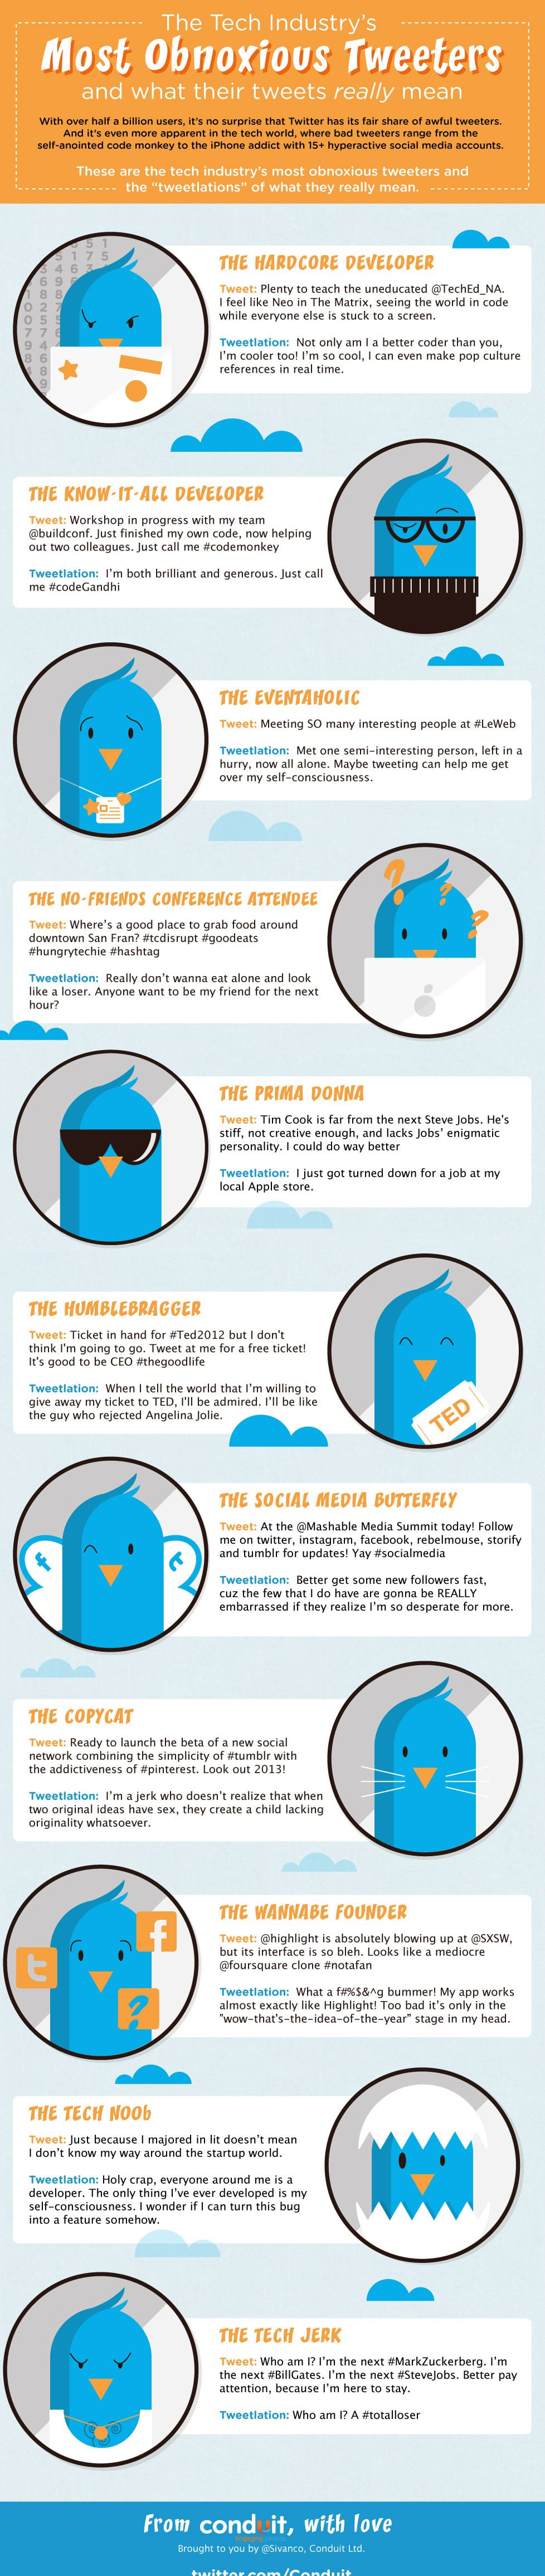 tech-industry-rude-tweeters-infographic